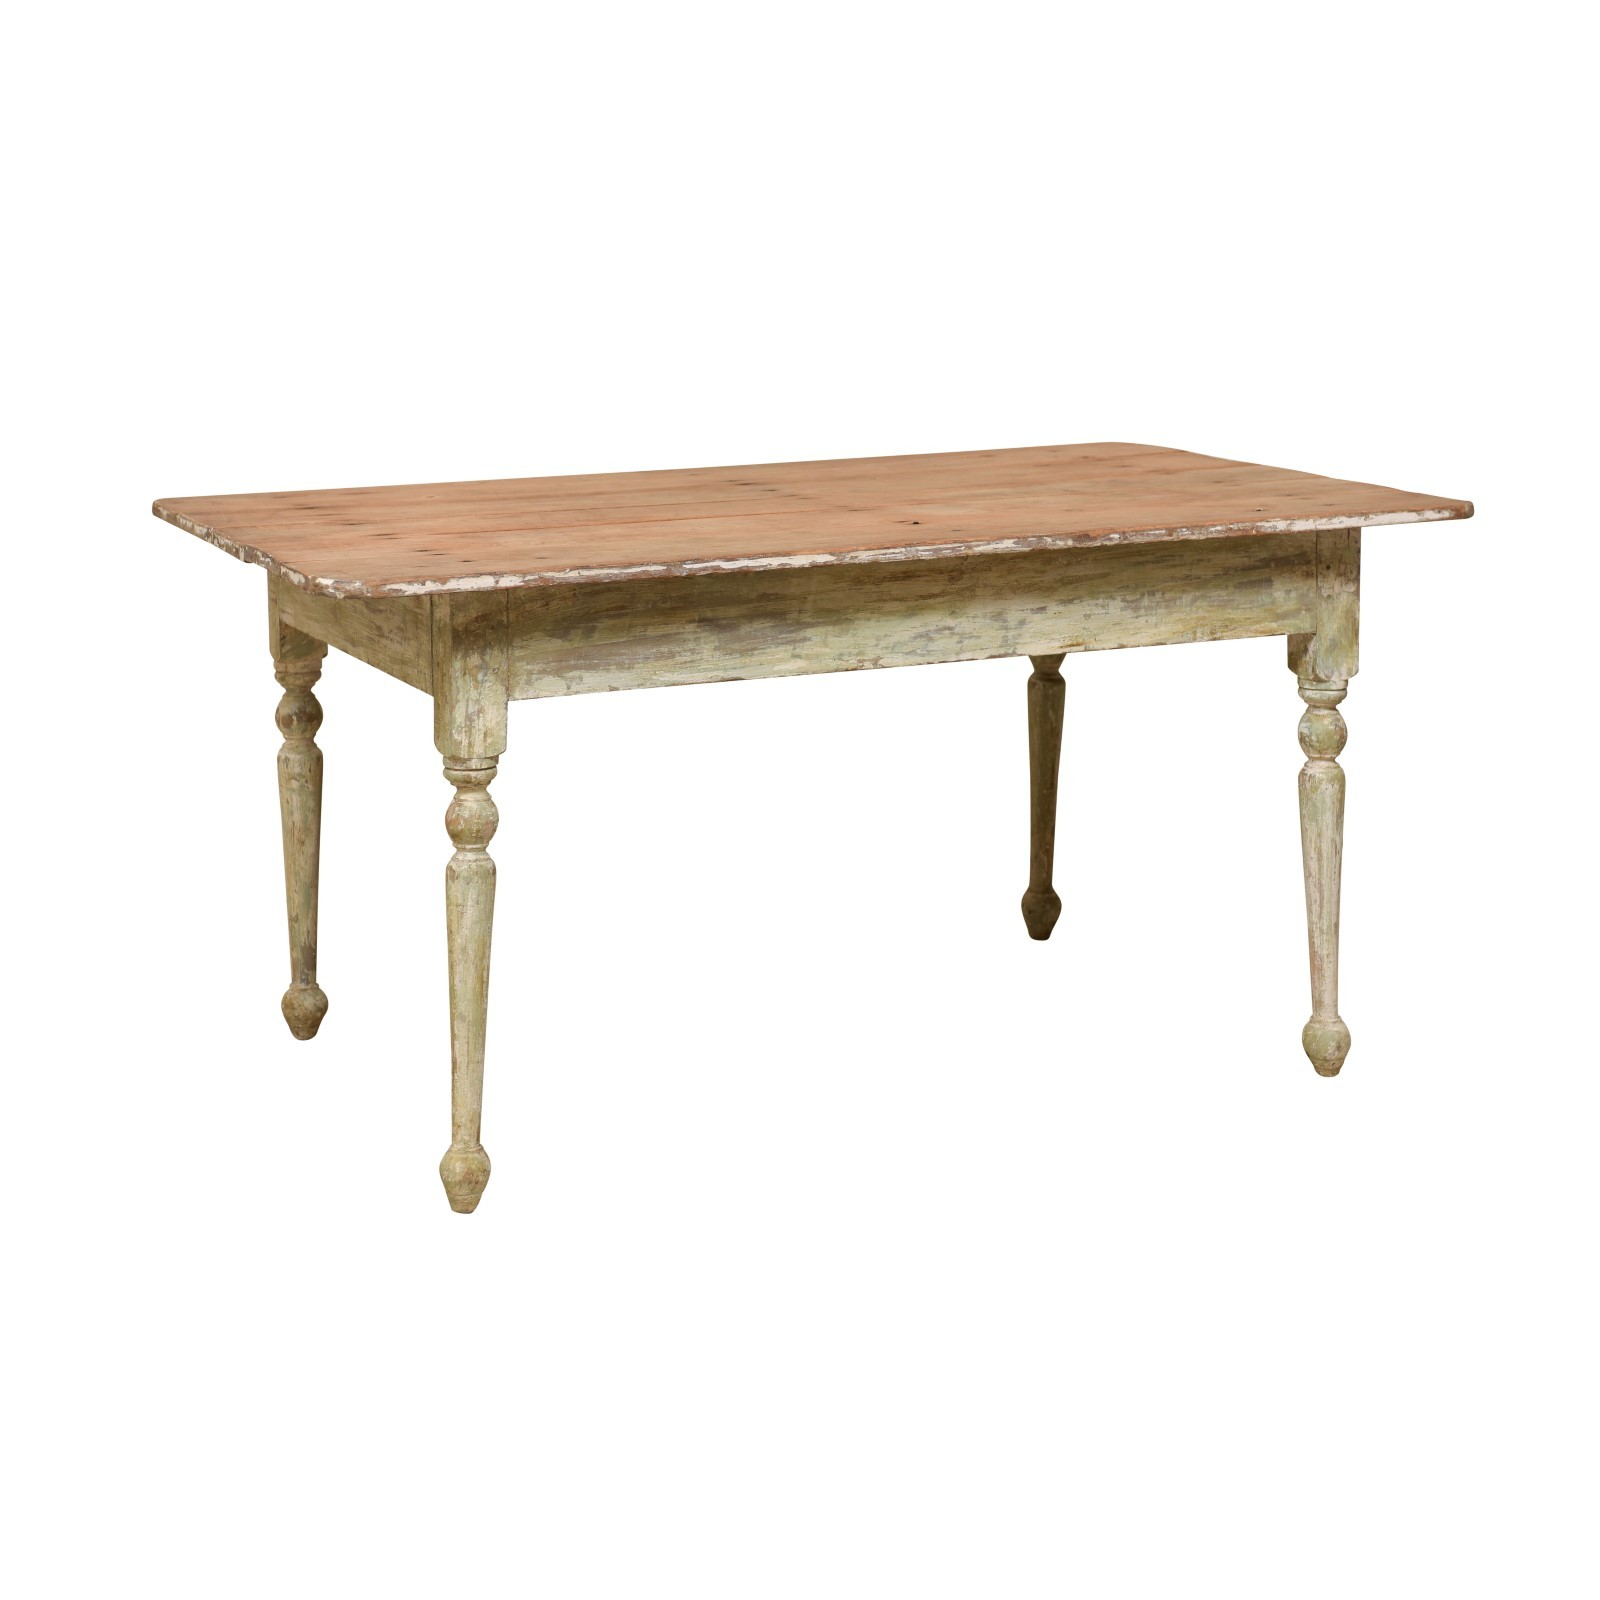 Antique American Farm-House Table